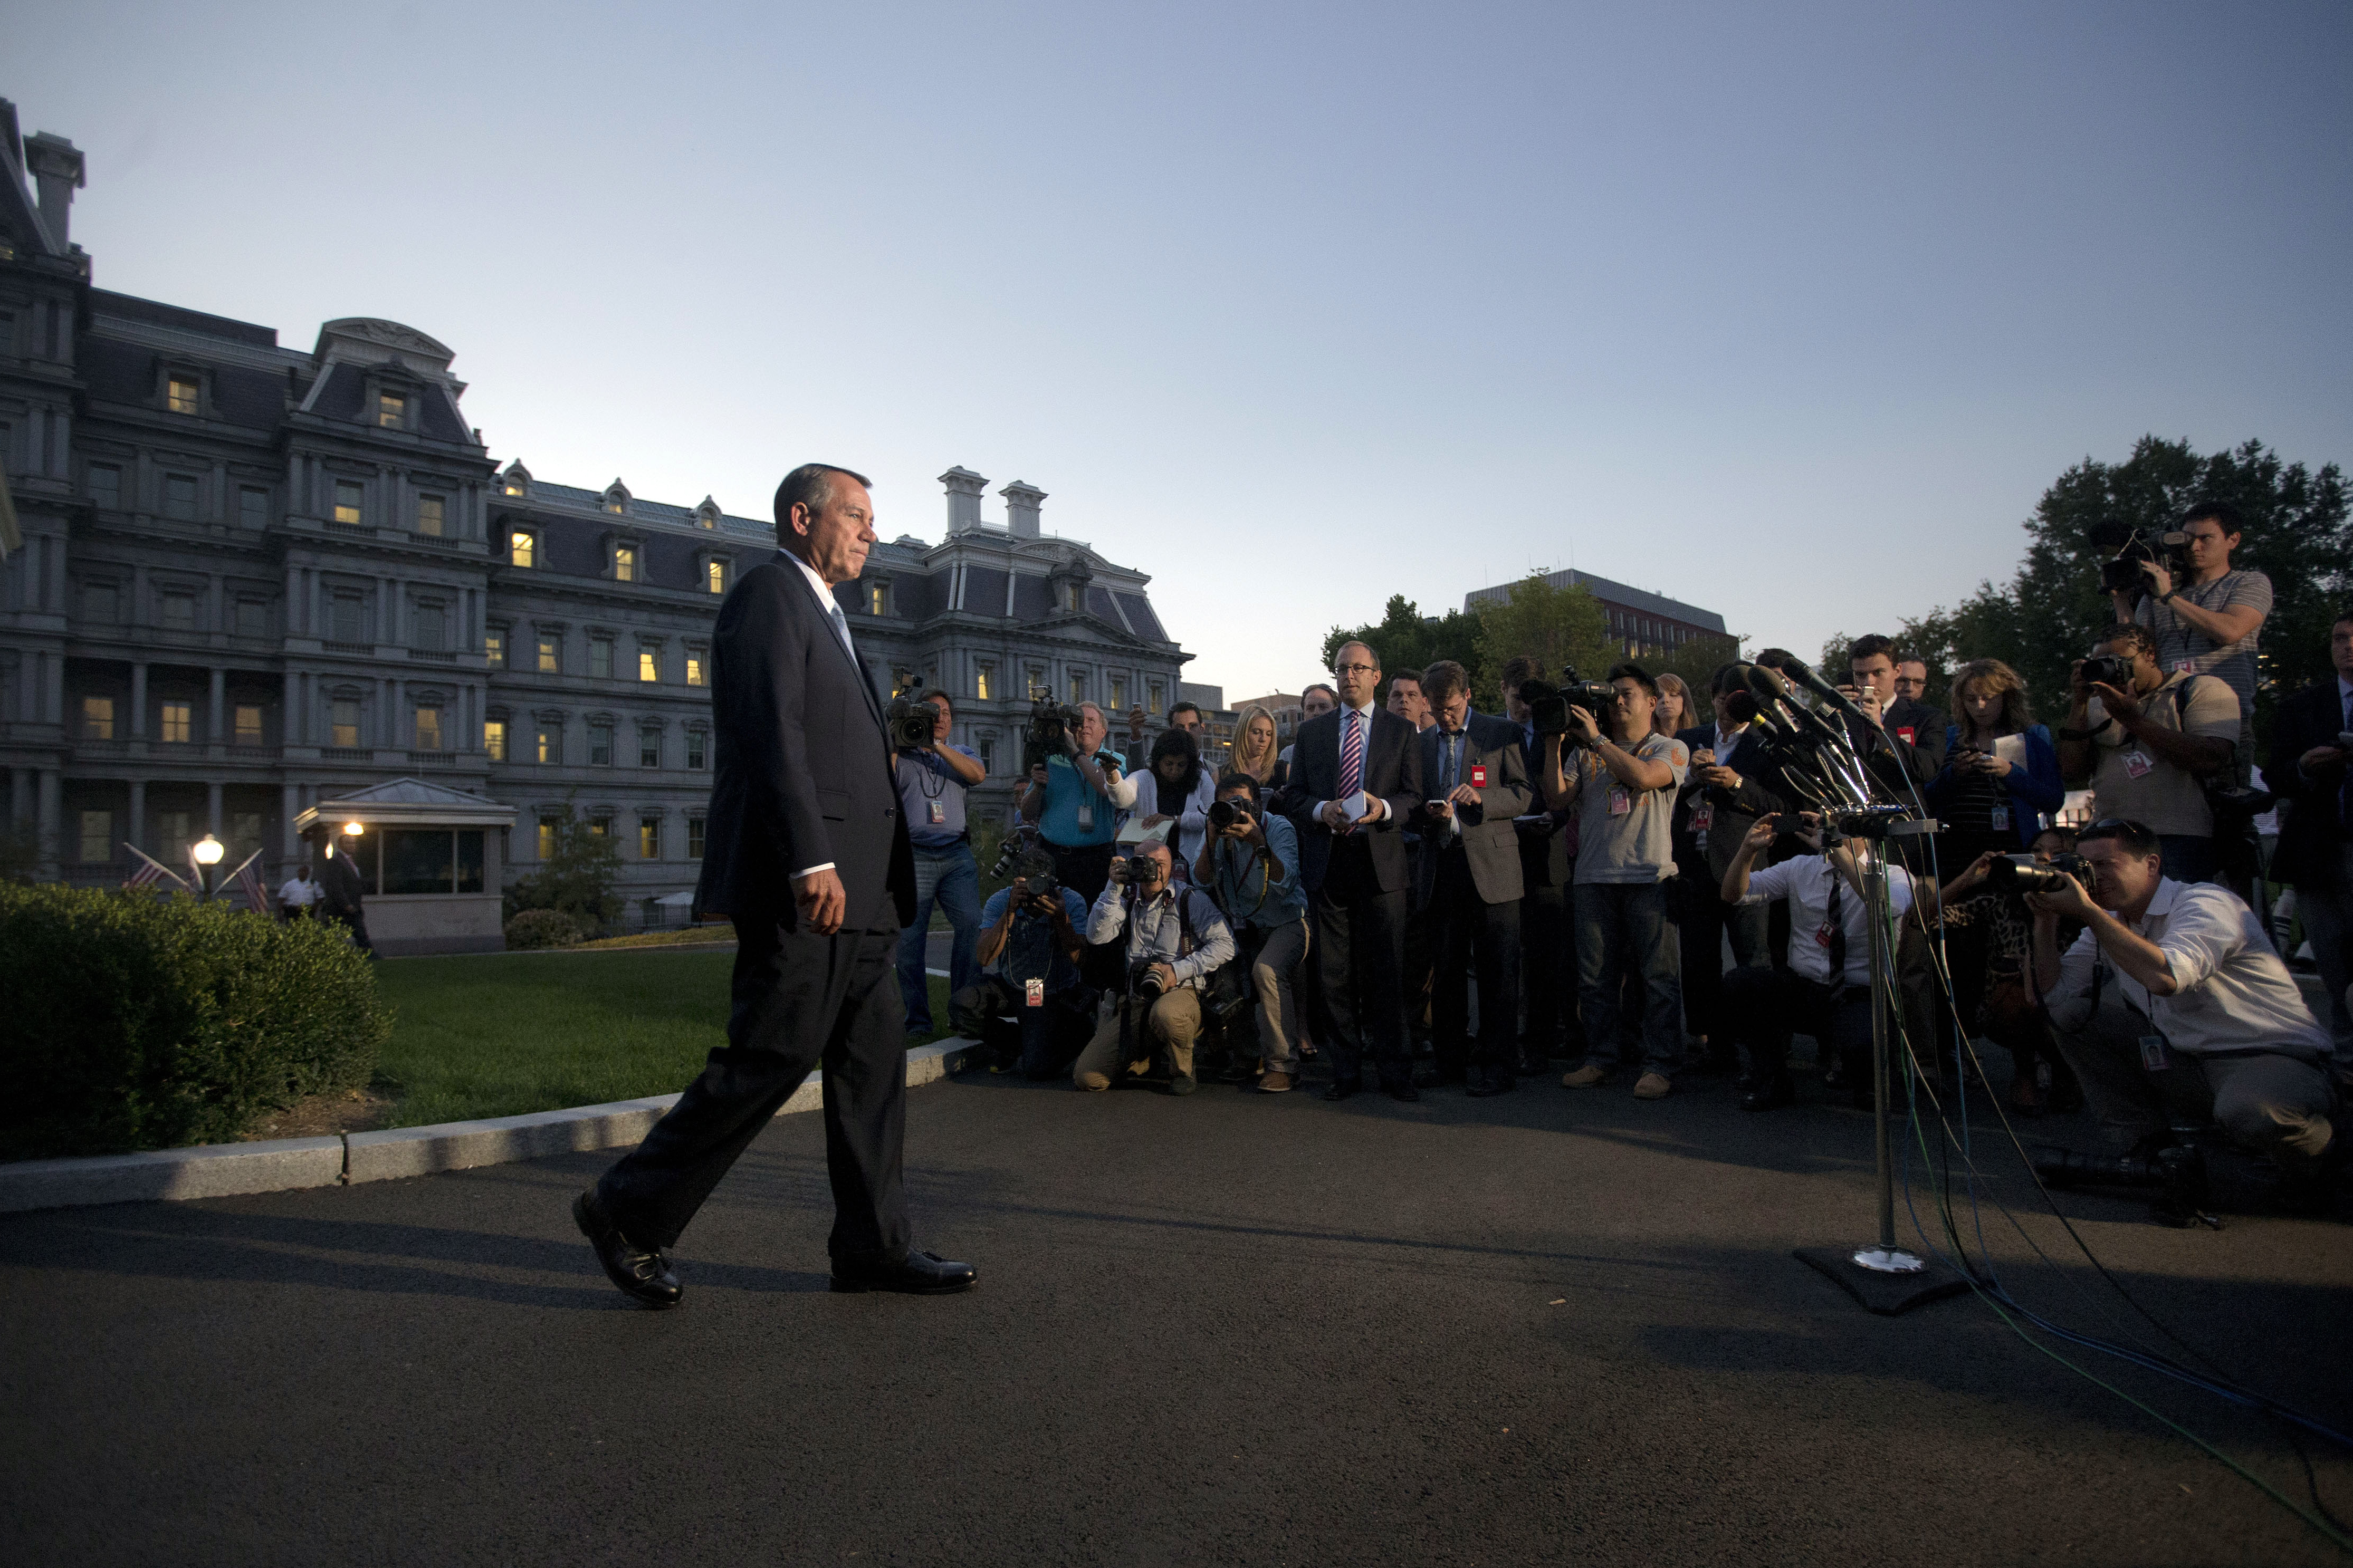 House Speaker John Boehner, R-Ohio, walks out of the White House to speak to members of the media after meeting with President Obama on Oct. 2.